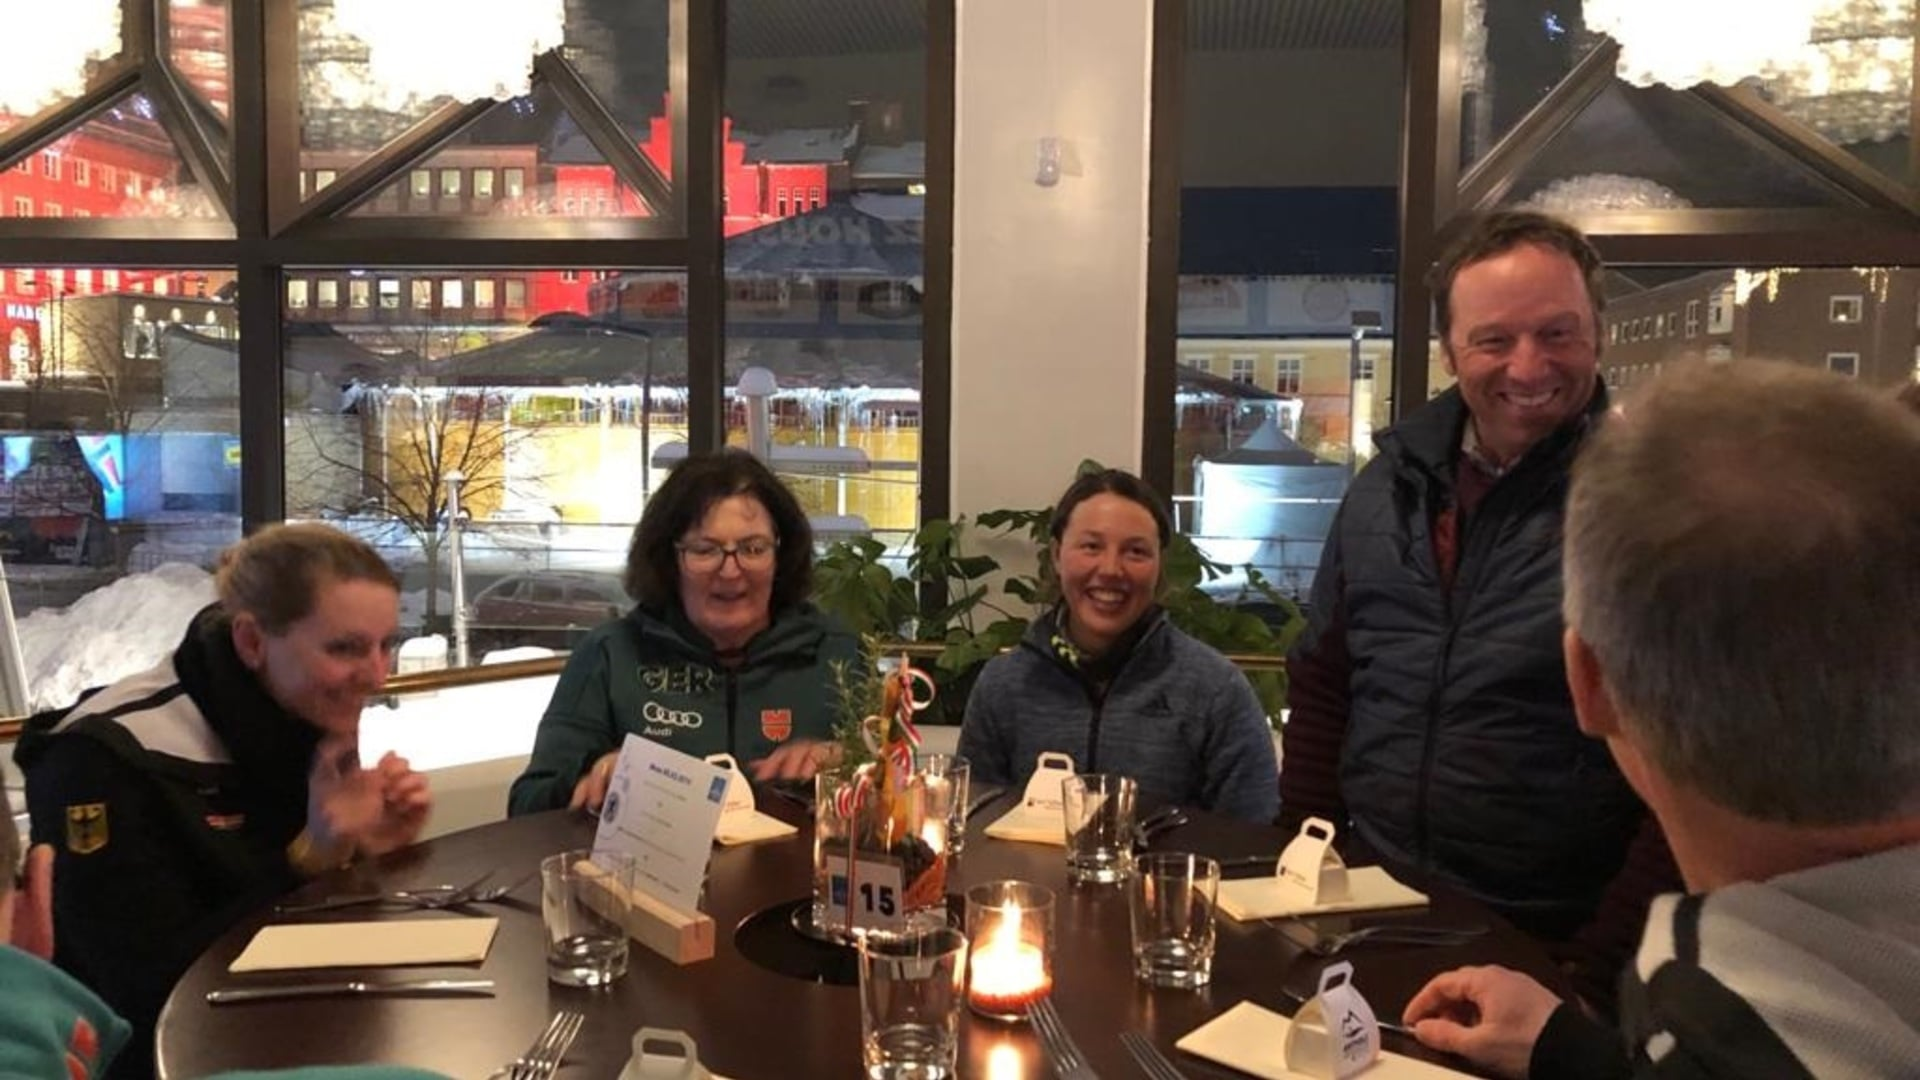 08.03.2019 - Laura Dahlmeier celebrated the bronze medal won in the Sprint in the Antholz House